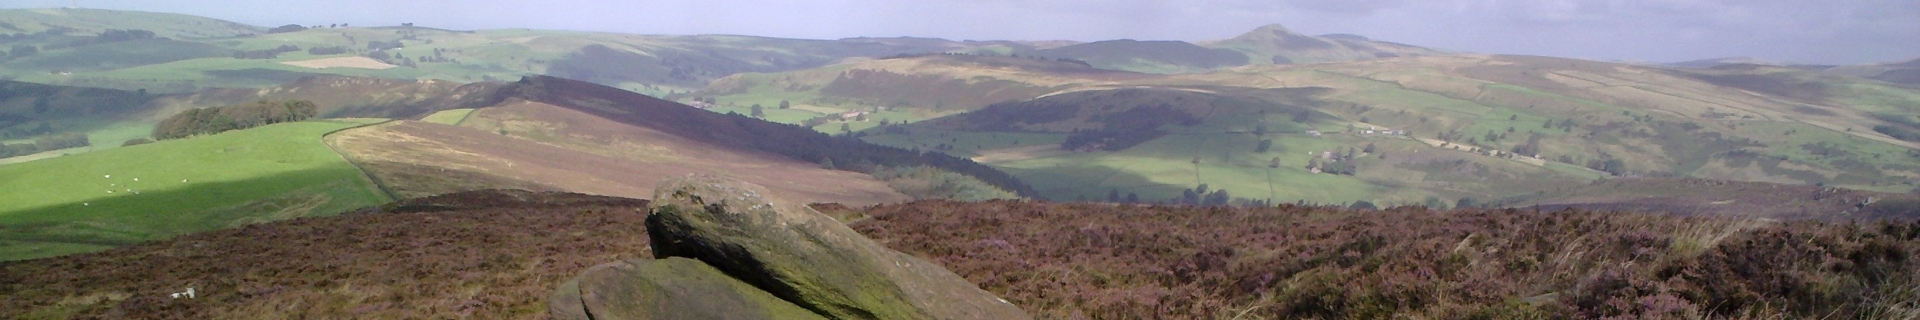 Banner image for Staffordshire Moorlands